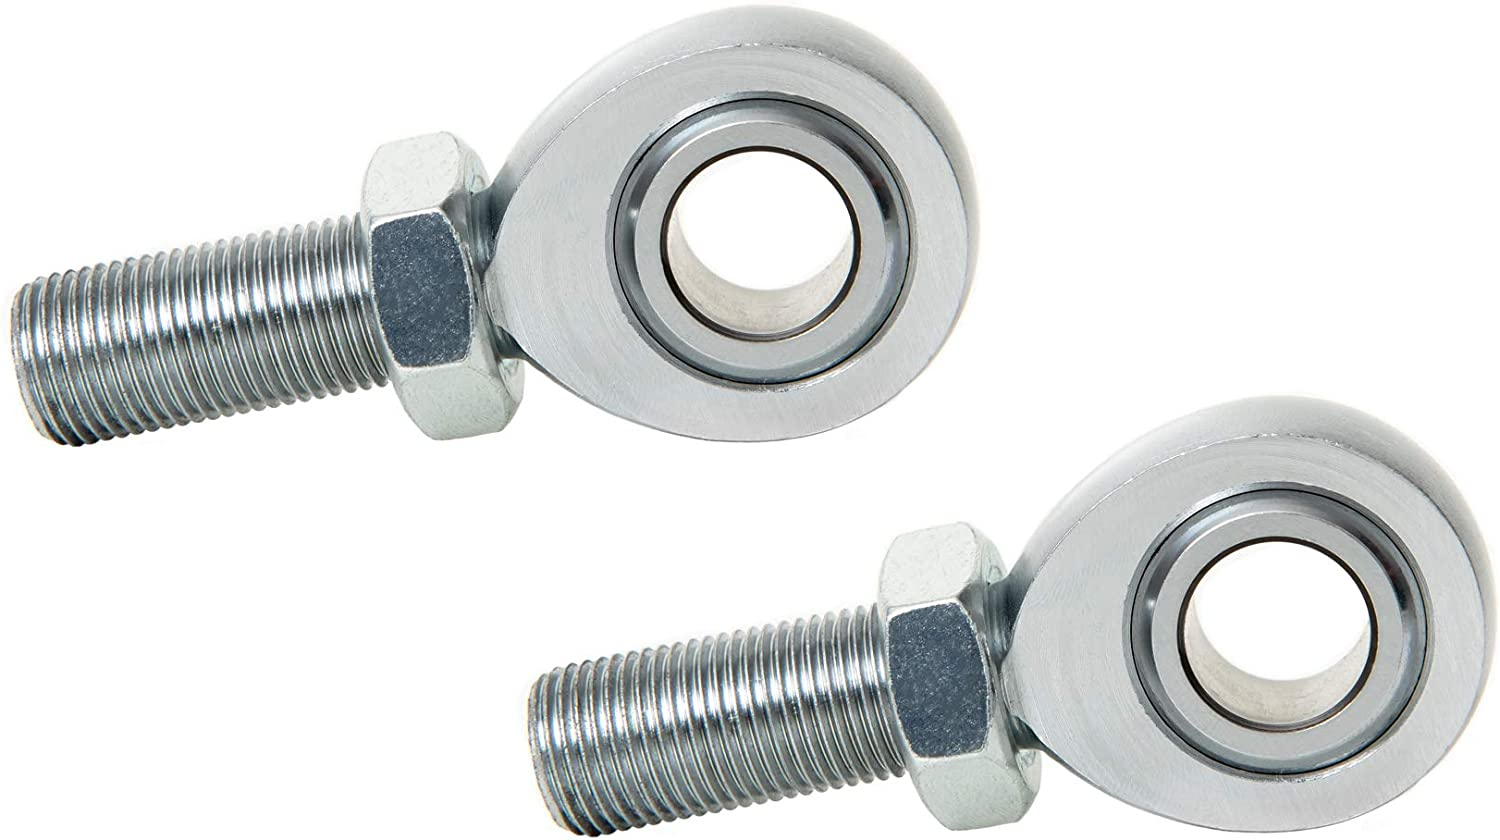 Set of 2 with Jam Nuts American Star CMR10 5//8 x 5//8-18 RH Thread Male Heim Joint